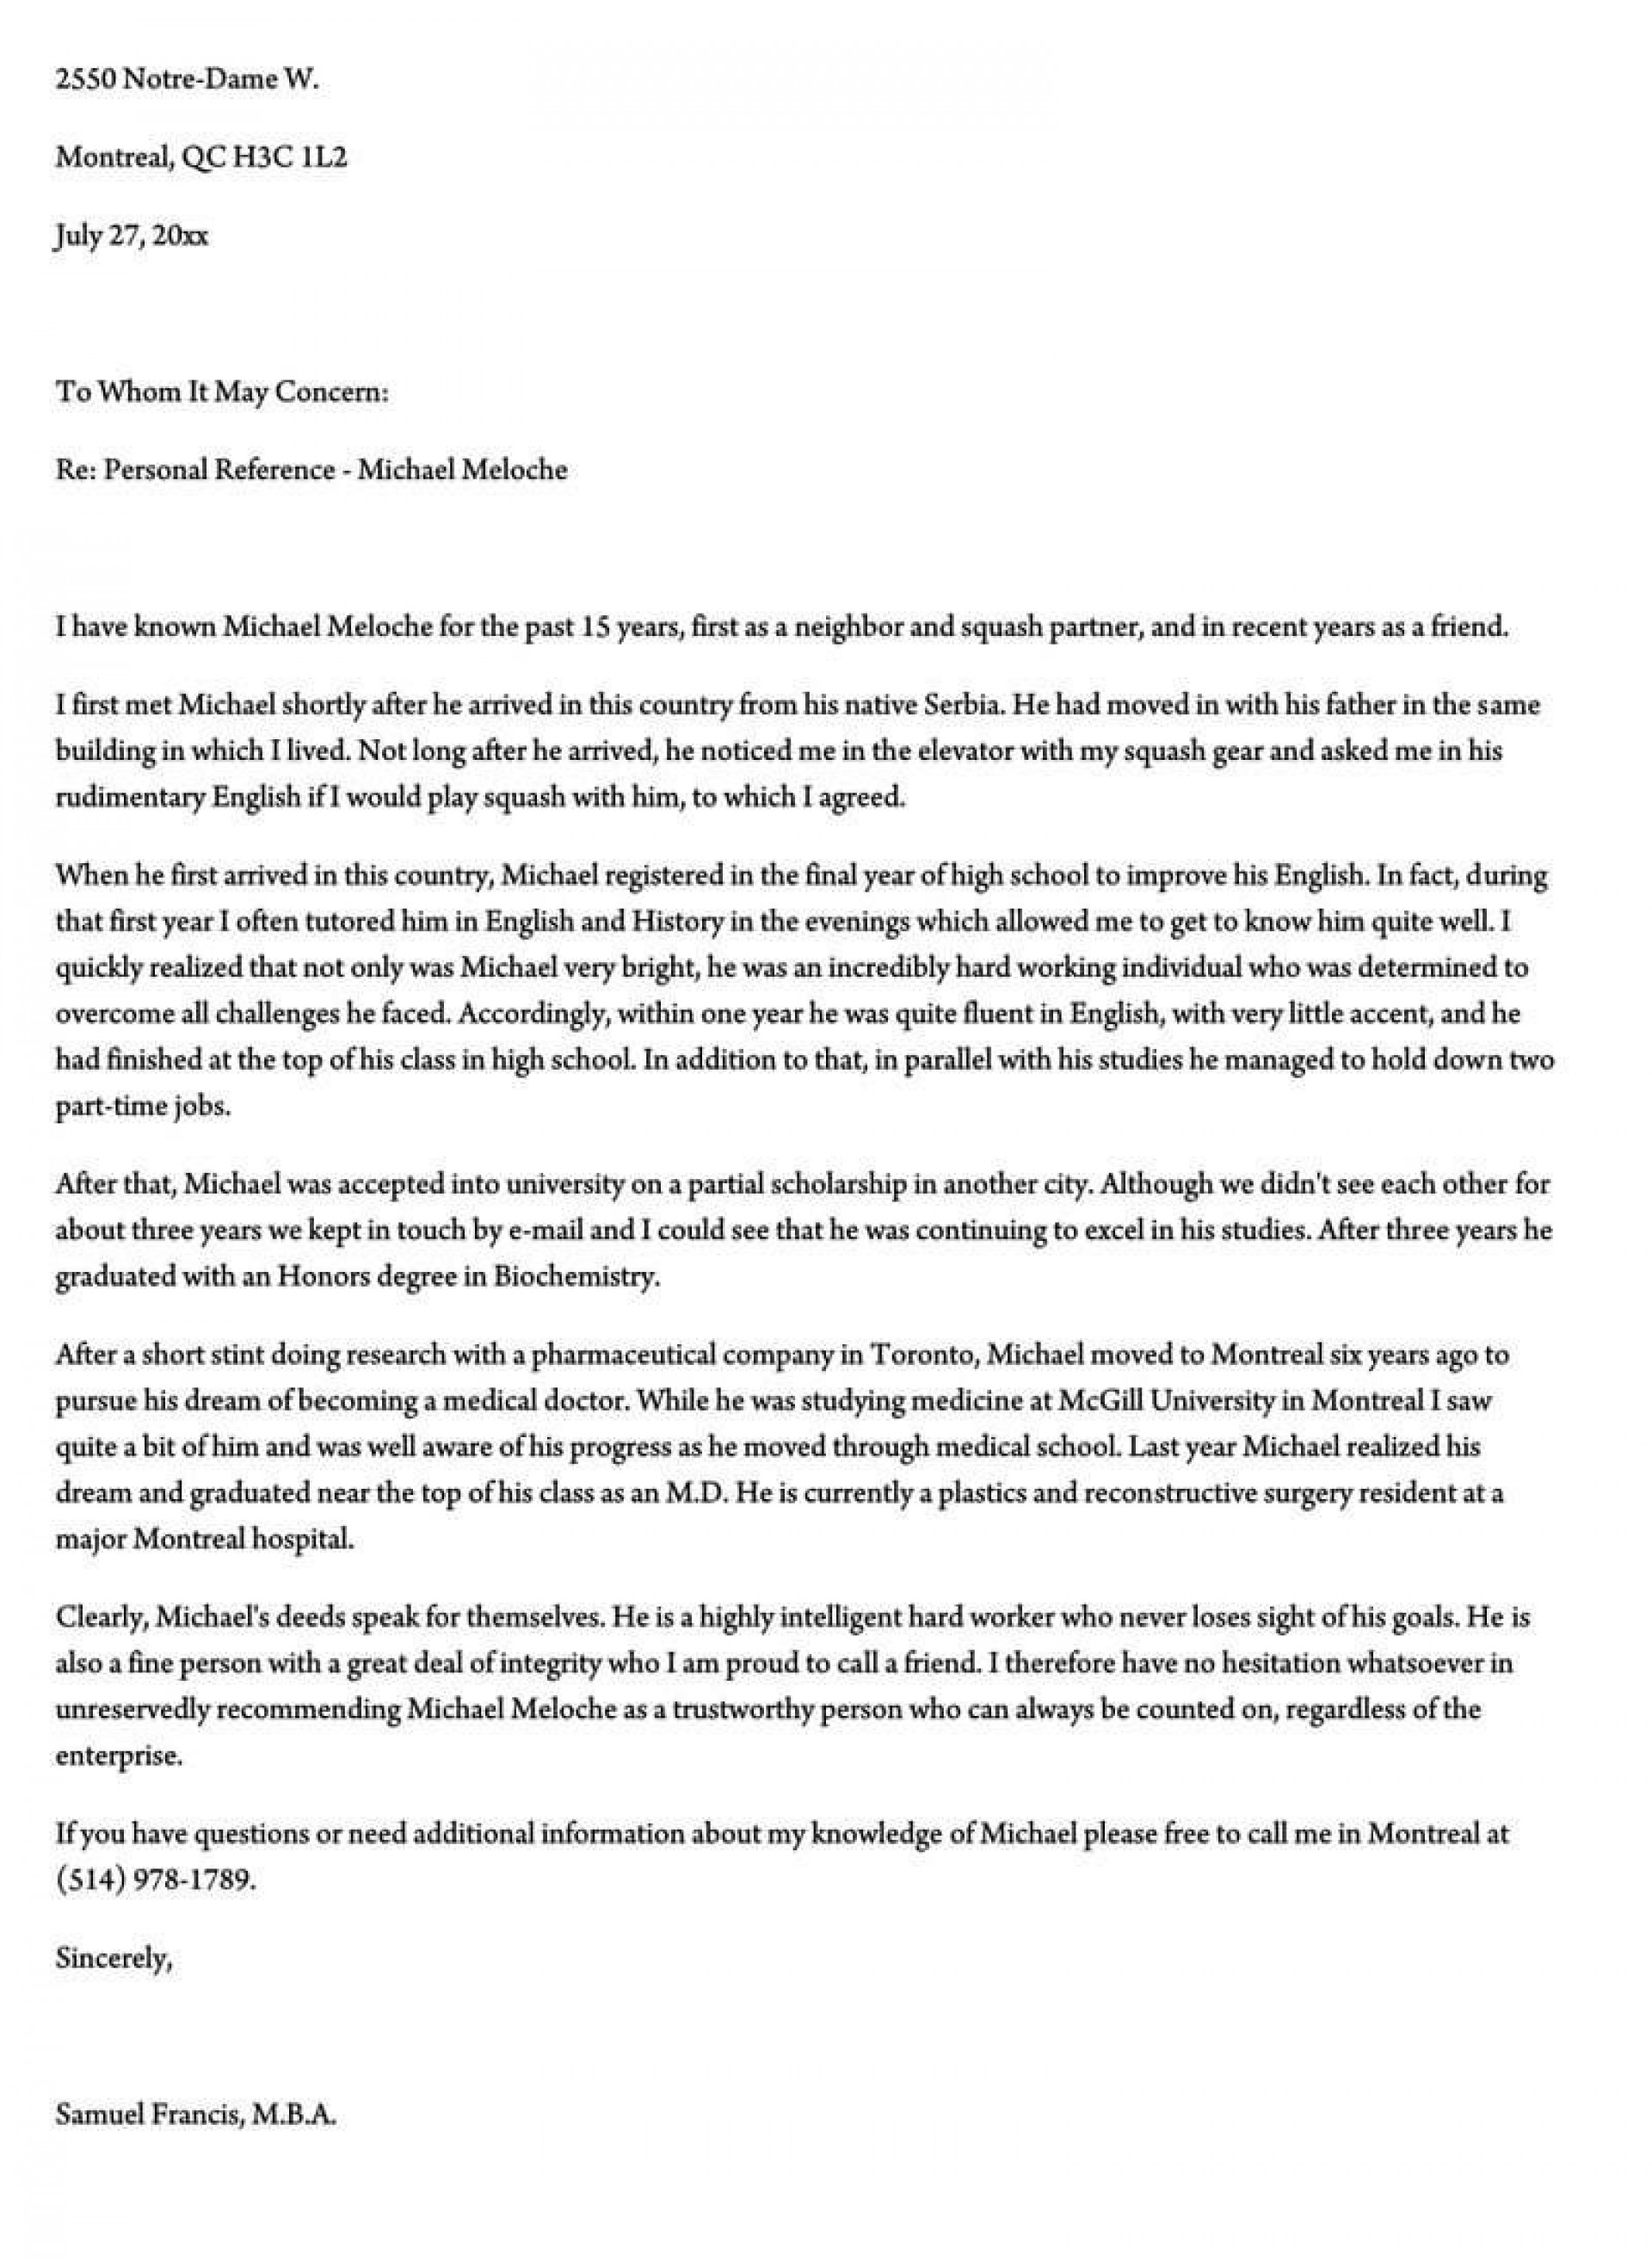 003 Unforgettable Free Reference Letter Template For Employment Example  Word1920